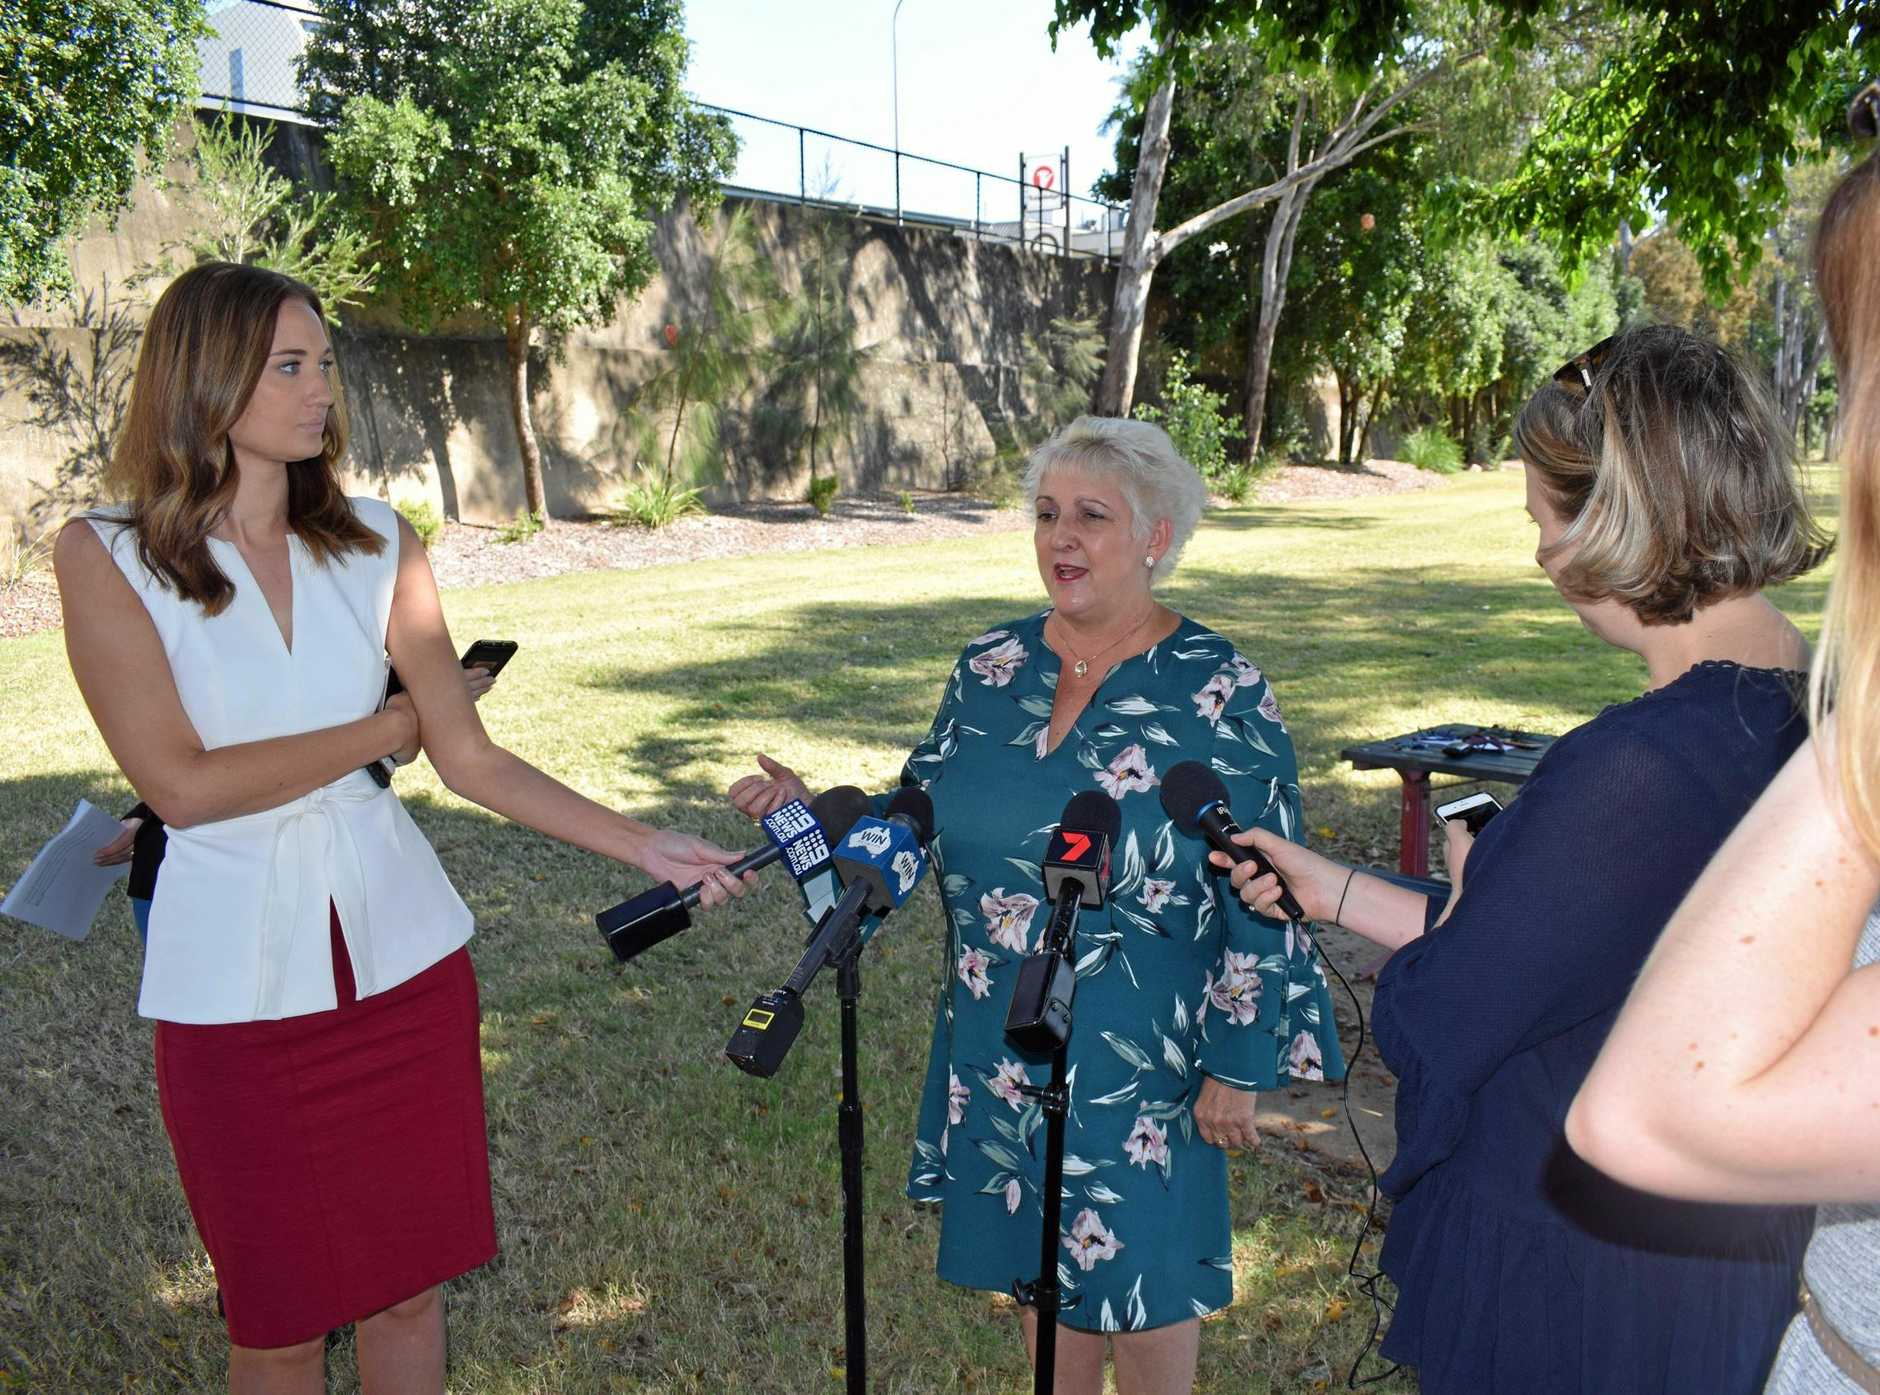 GOING OVERBOARD: Capricornia MP Michelle Landry believes society is overreacting too much on the issue of political correctness.